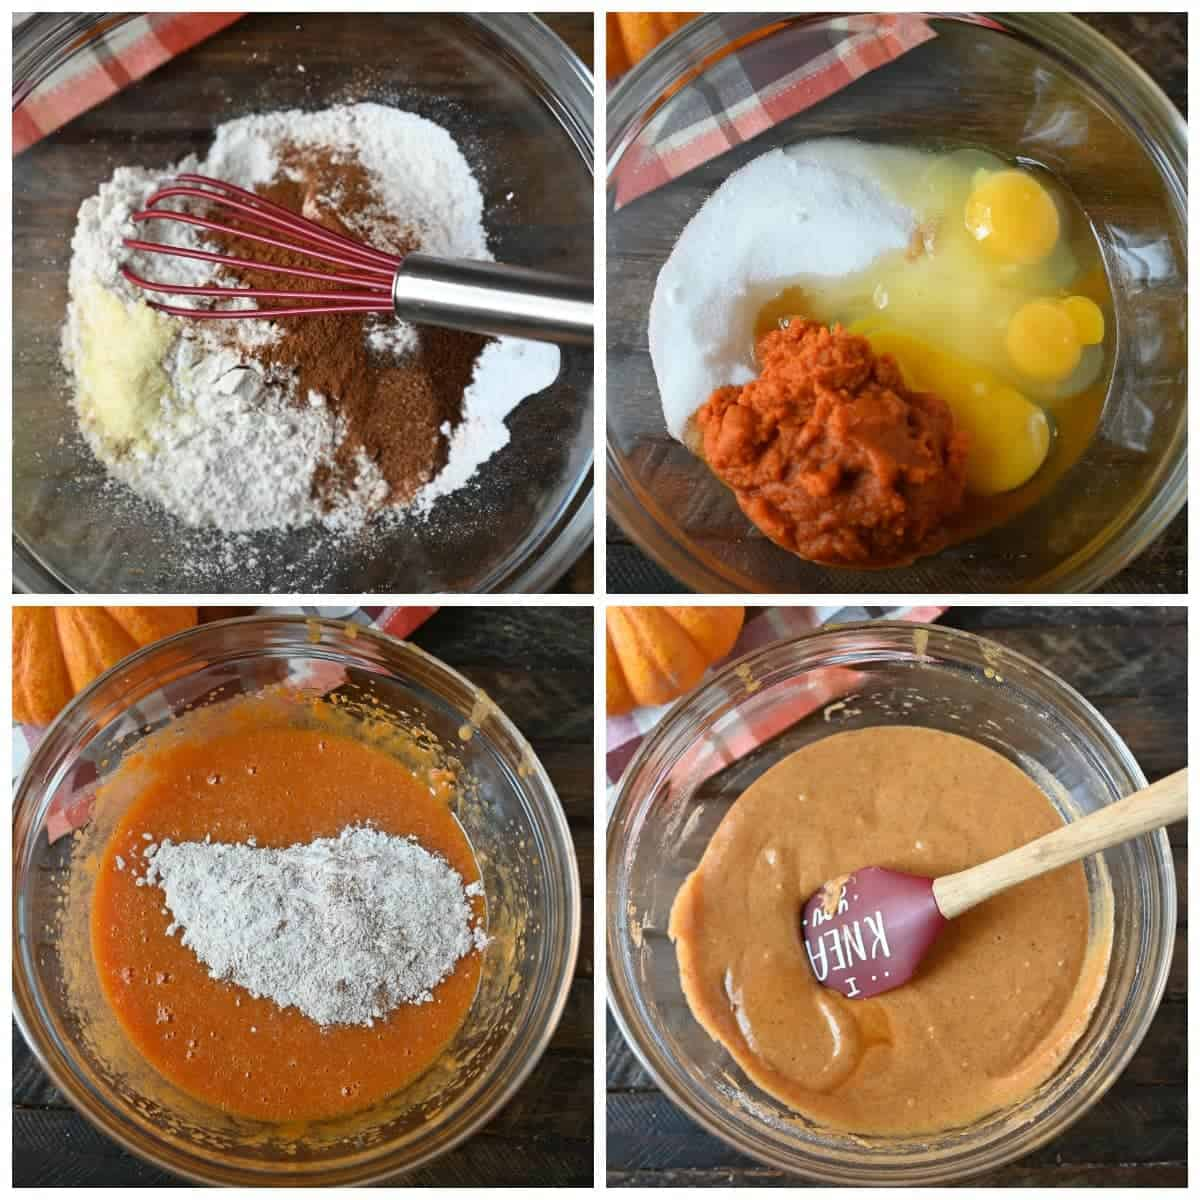 Four process photos. First one, dry ingredients in a bowl with a red whisk. Second one, wet ingredients in a bowl ready to be mixed. Dry ingredients mixed into the wet ingredients. Batter all mixed in a bowl with a red spatula.